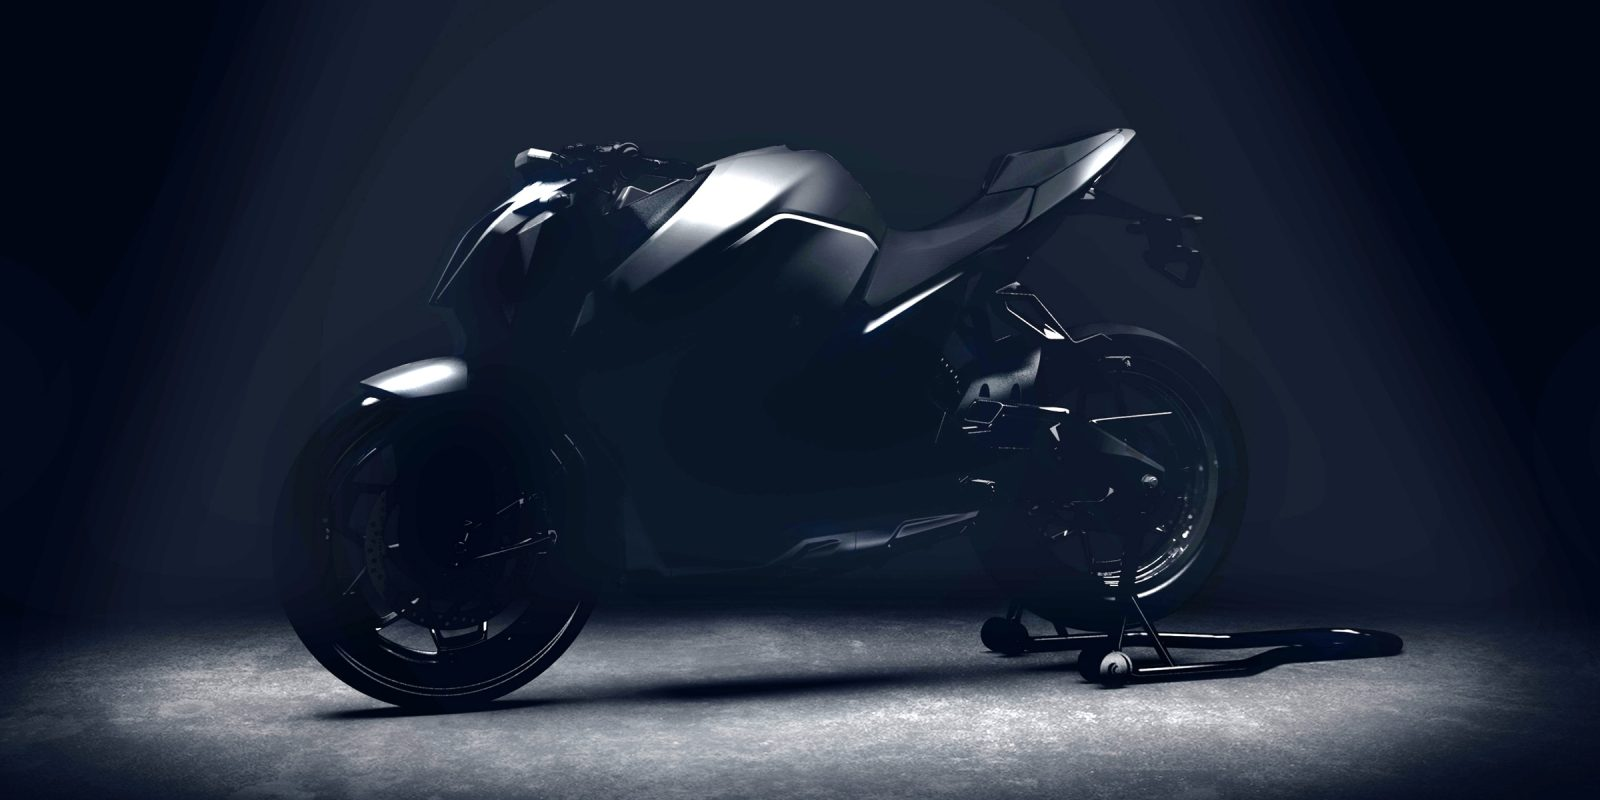 Upcoming Ultraviolette F77 electric motorcycle may rival 250-450cc sportbikes